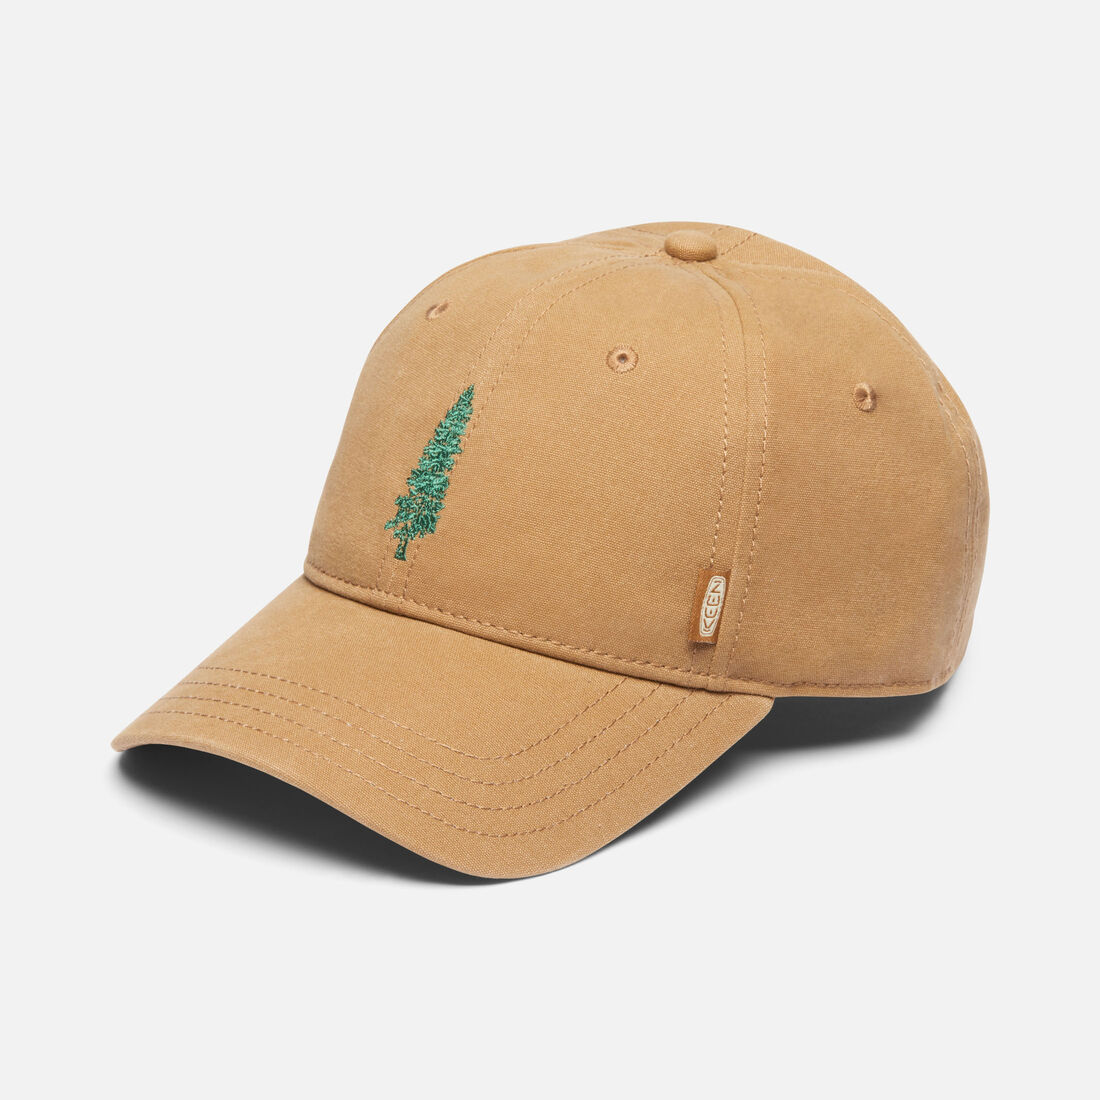 Fir Tree Hat in Khaki - large view.